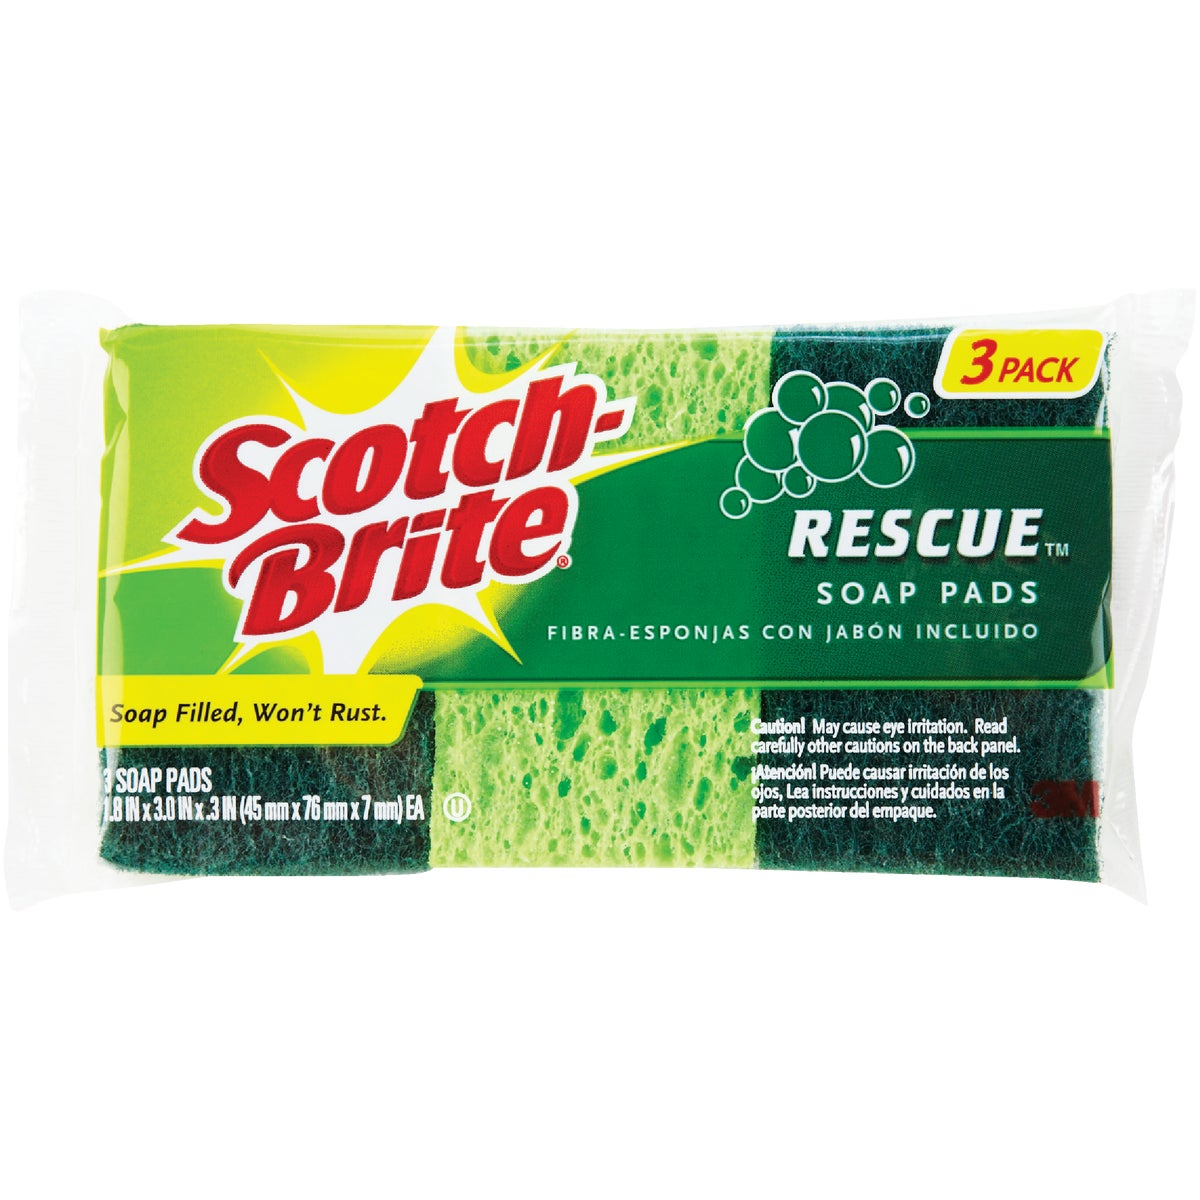 SCOTCH-BRITE RESCUE PAD - 300 by 3m Co